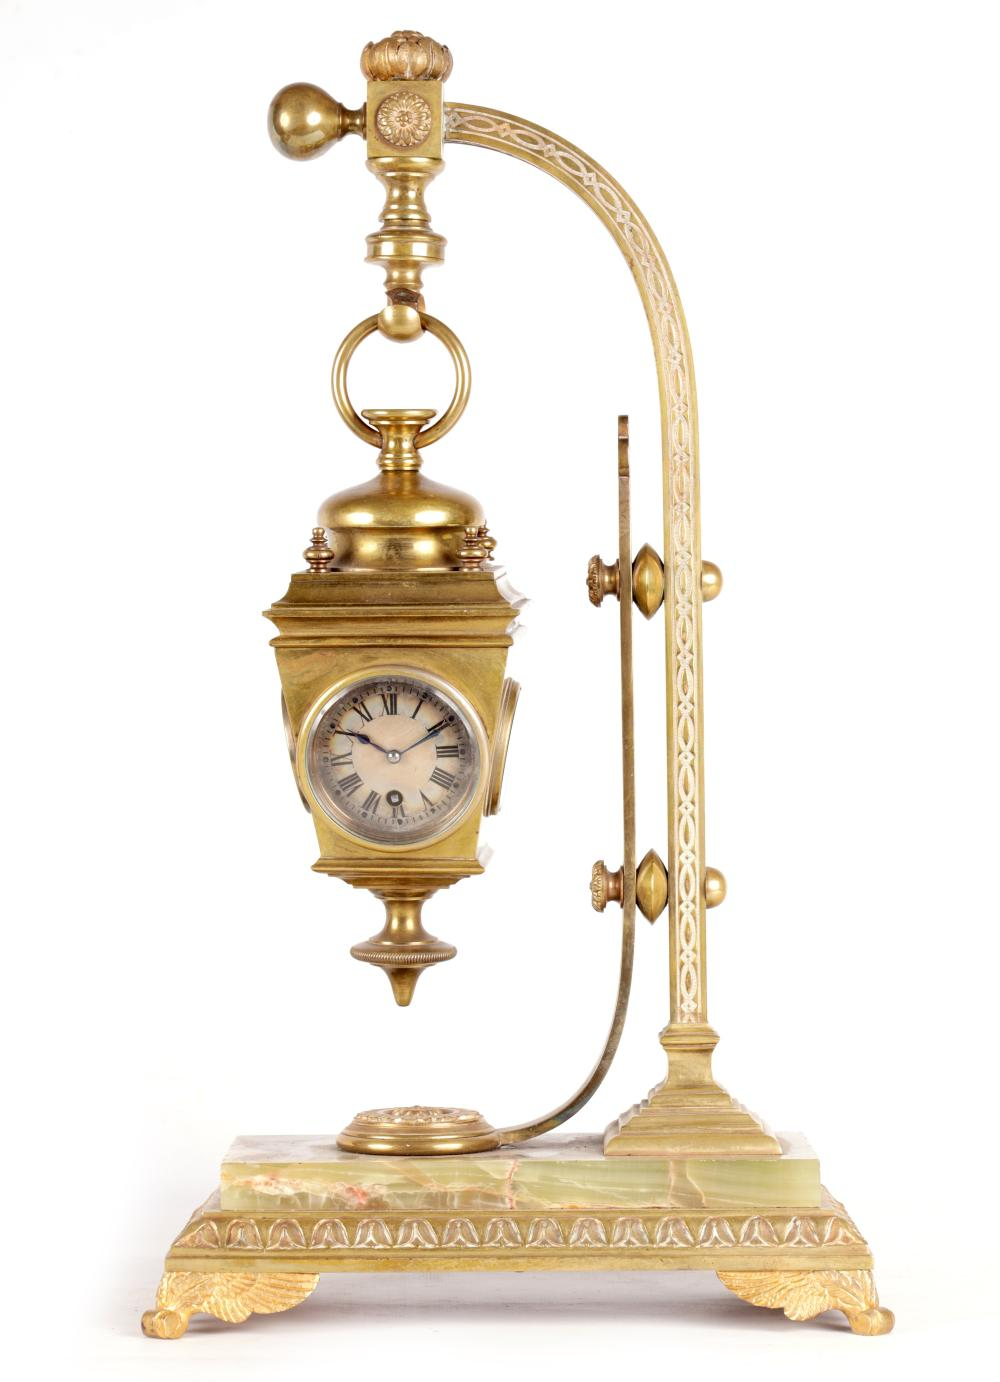 AN UNUSUAL LATE 19TH CENTURY FRENCH BRASS AND ONYX NOVELTY MANTEL CLOCK